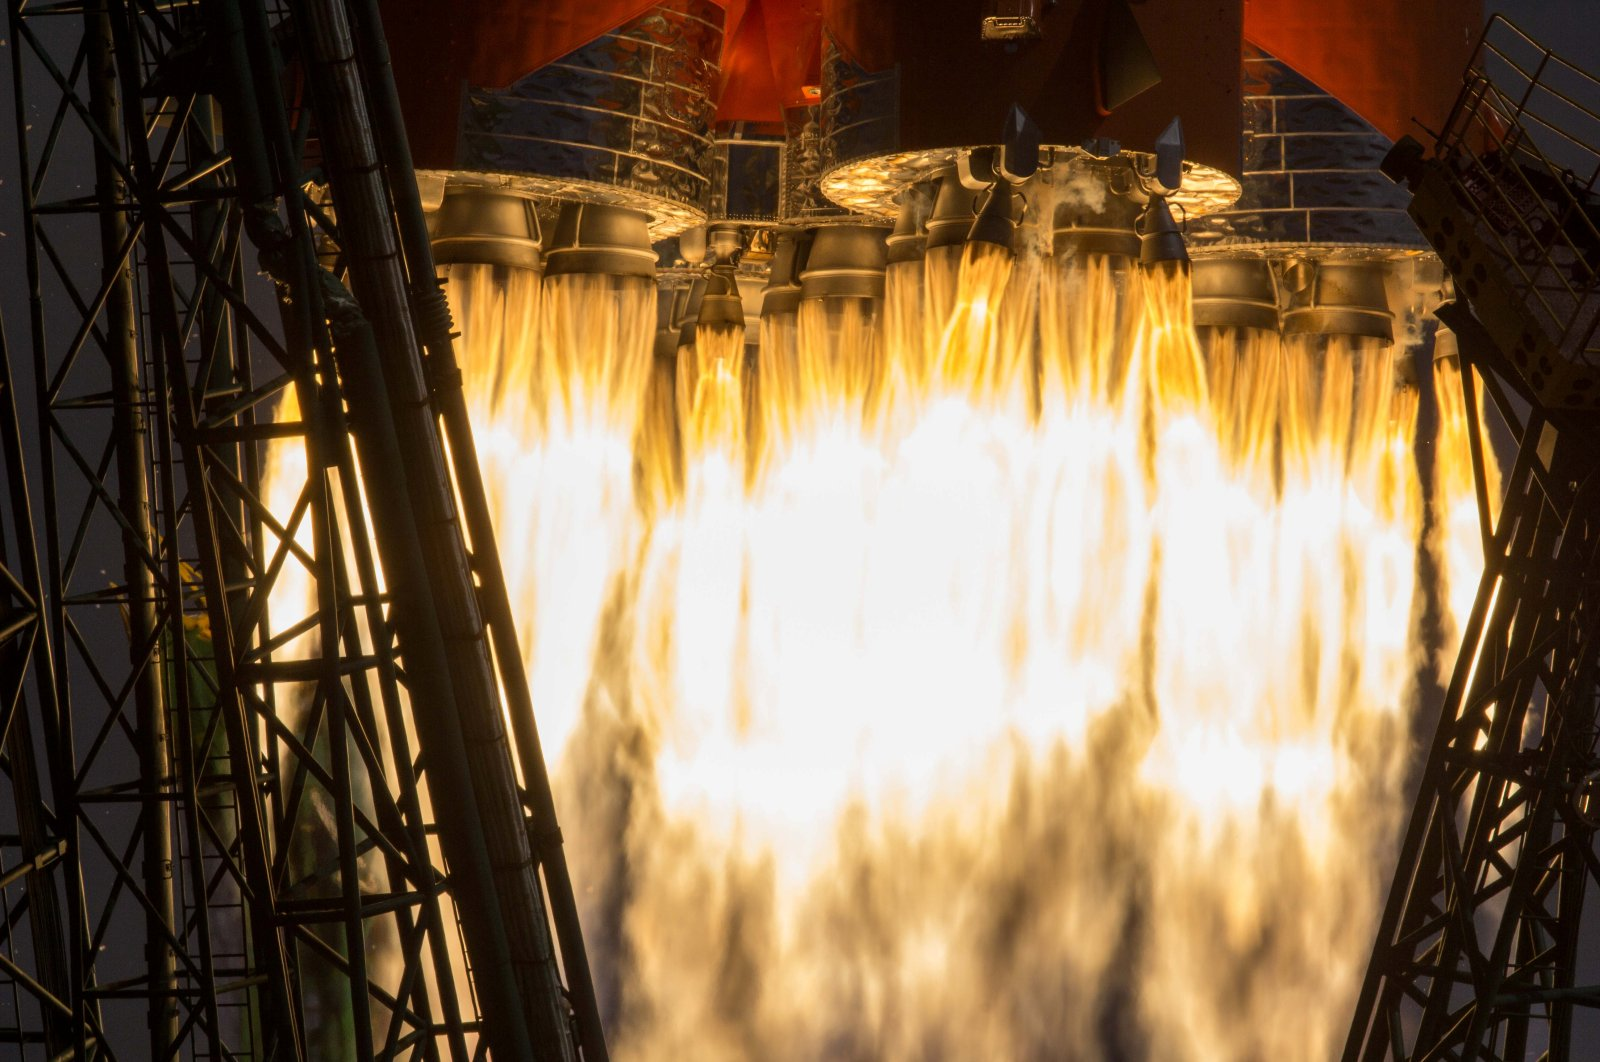 The Soyuz MS-16 spacecraft, carrying the crew consisting of Chris Cassidy of NASA, and Anatoly Ivanishin and Ivan Vagner of the Russian space agency Roscosmos, blasts off for the International Space Station (ISS) from the launchpad at the Baikonur Cosmodrome, Kazakhstan, April 9, 2020. (Roscosmos State Corporation for Space Activities handout via Reuters)